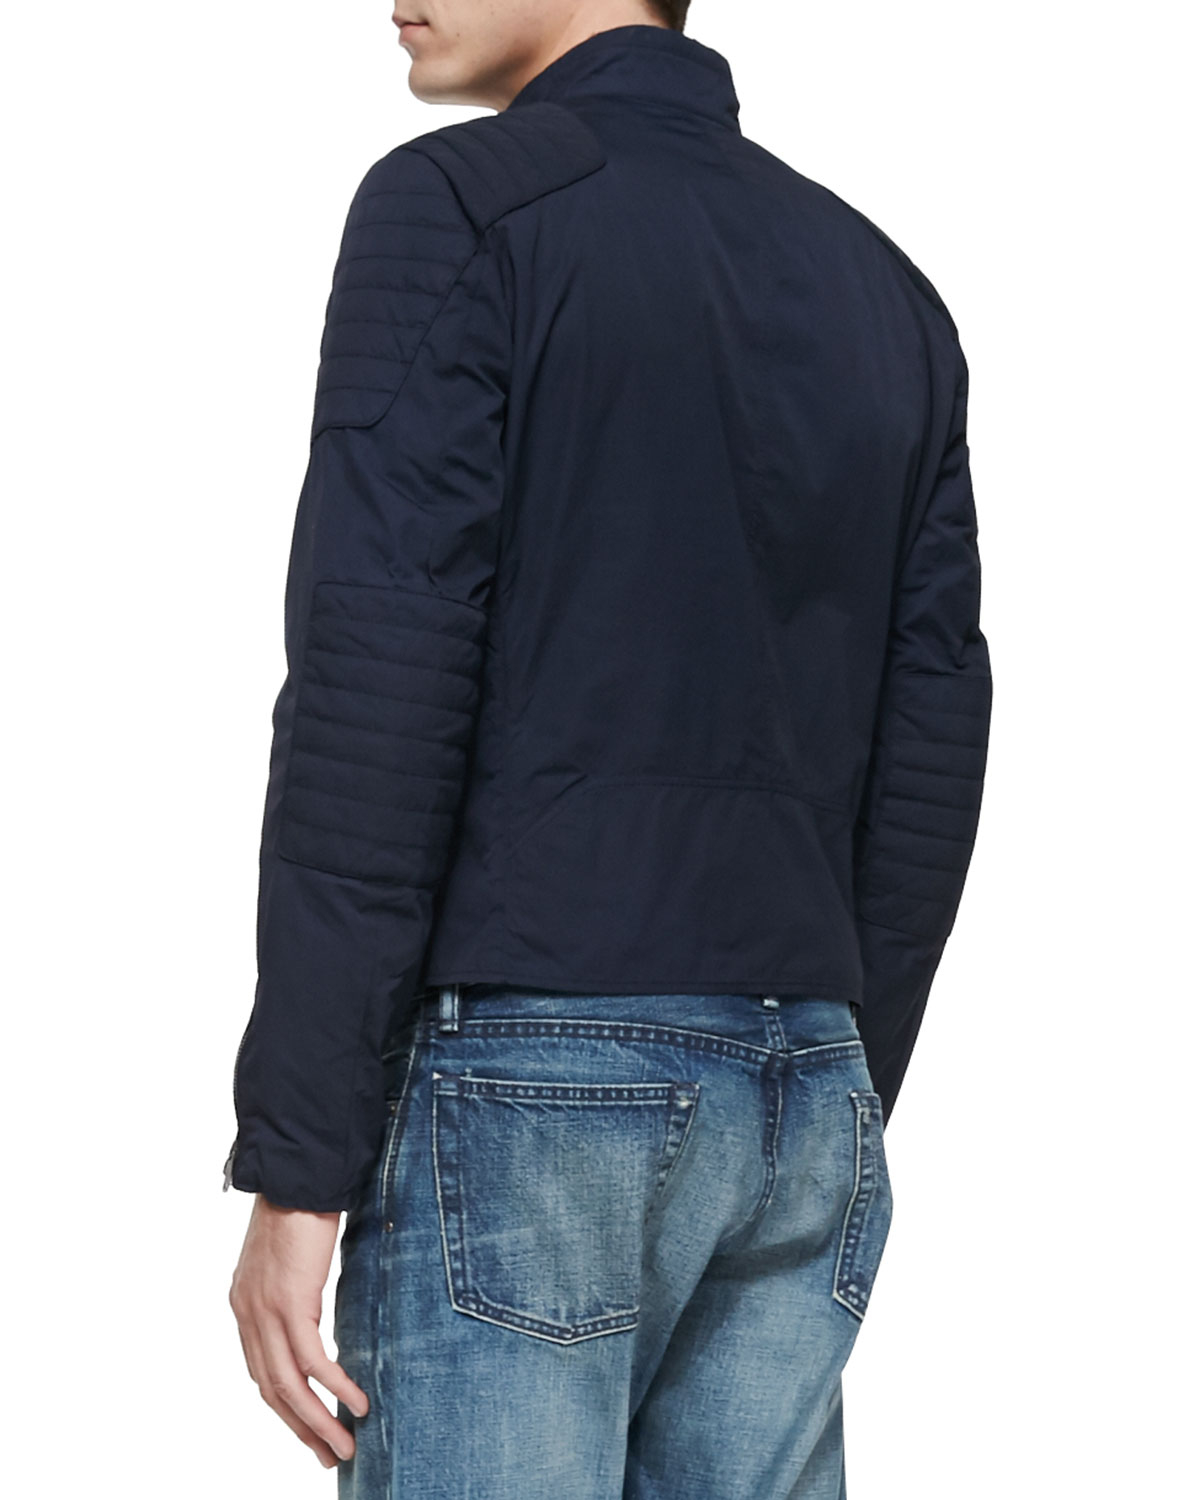 Ralph lauren black label Lightweight Biker Jacket in Blue for Men ...